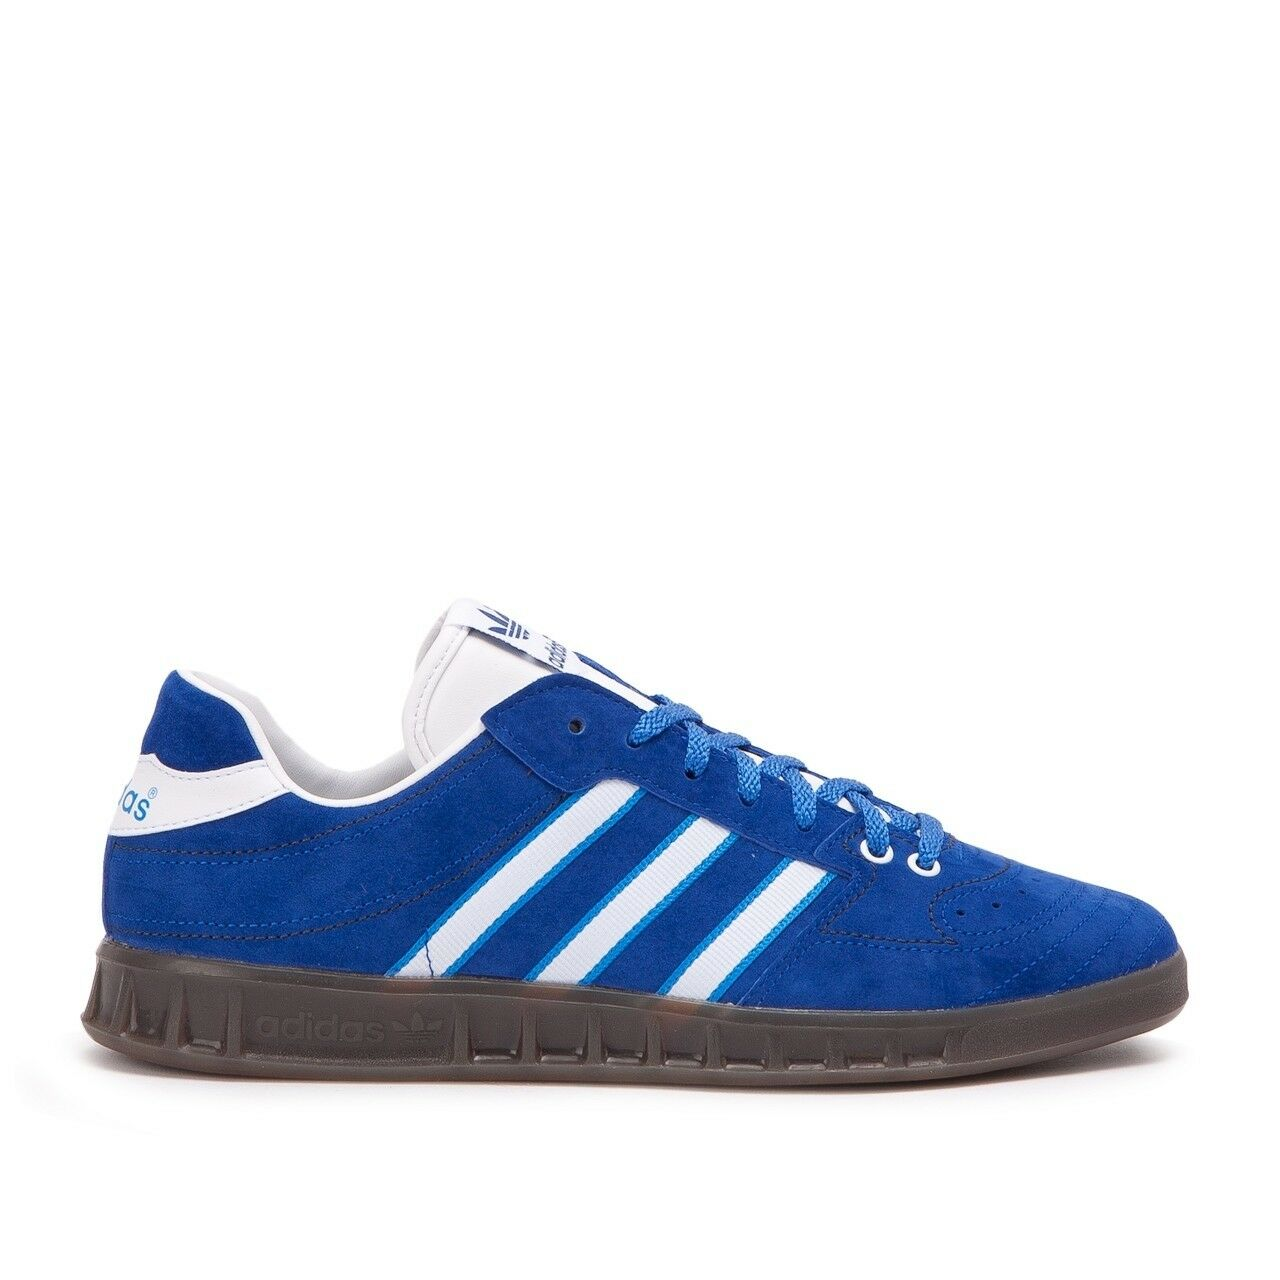 ADIDAS ORIGINALS MENS HANDBALL KREFT TRAINERS ALLGrößeS 6 TO 11.5  NOT GAZELLE